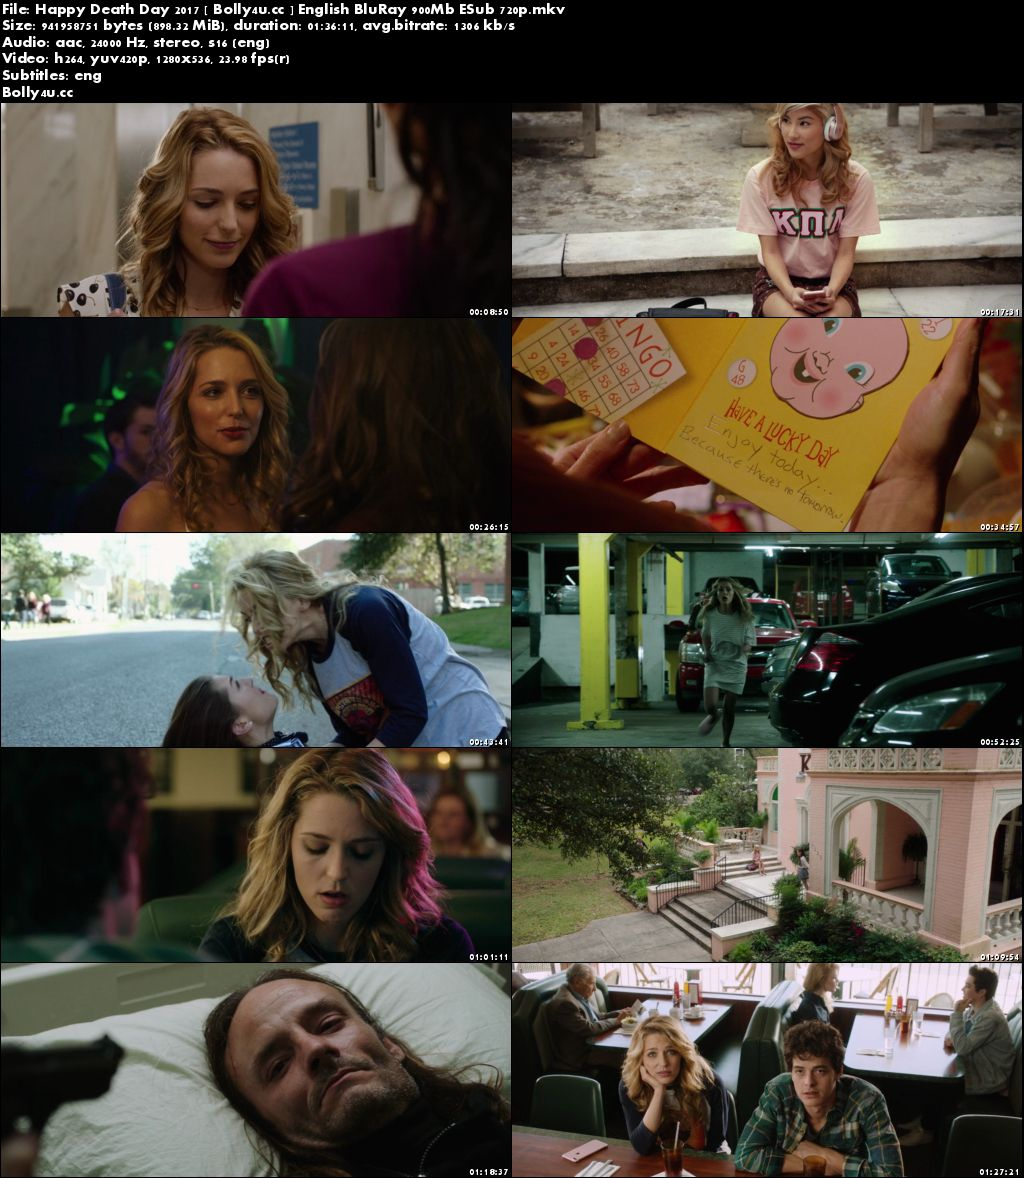 Happy Death Day 2017 BluRay 900MB English 720p ESub Download